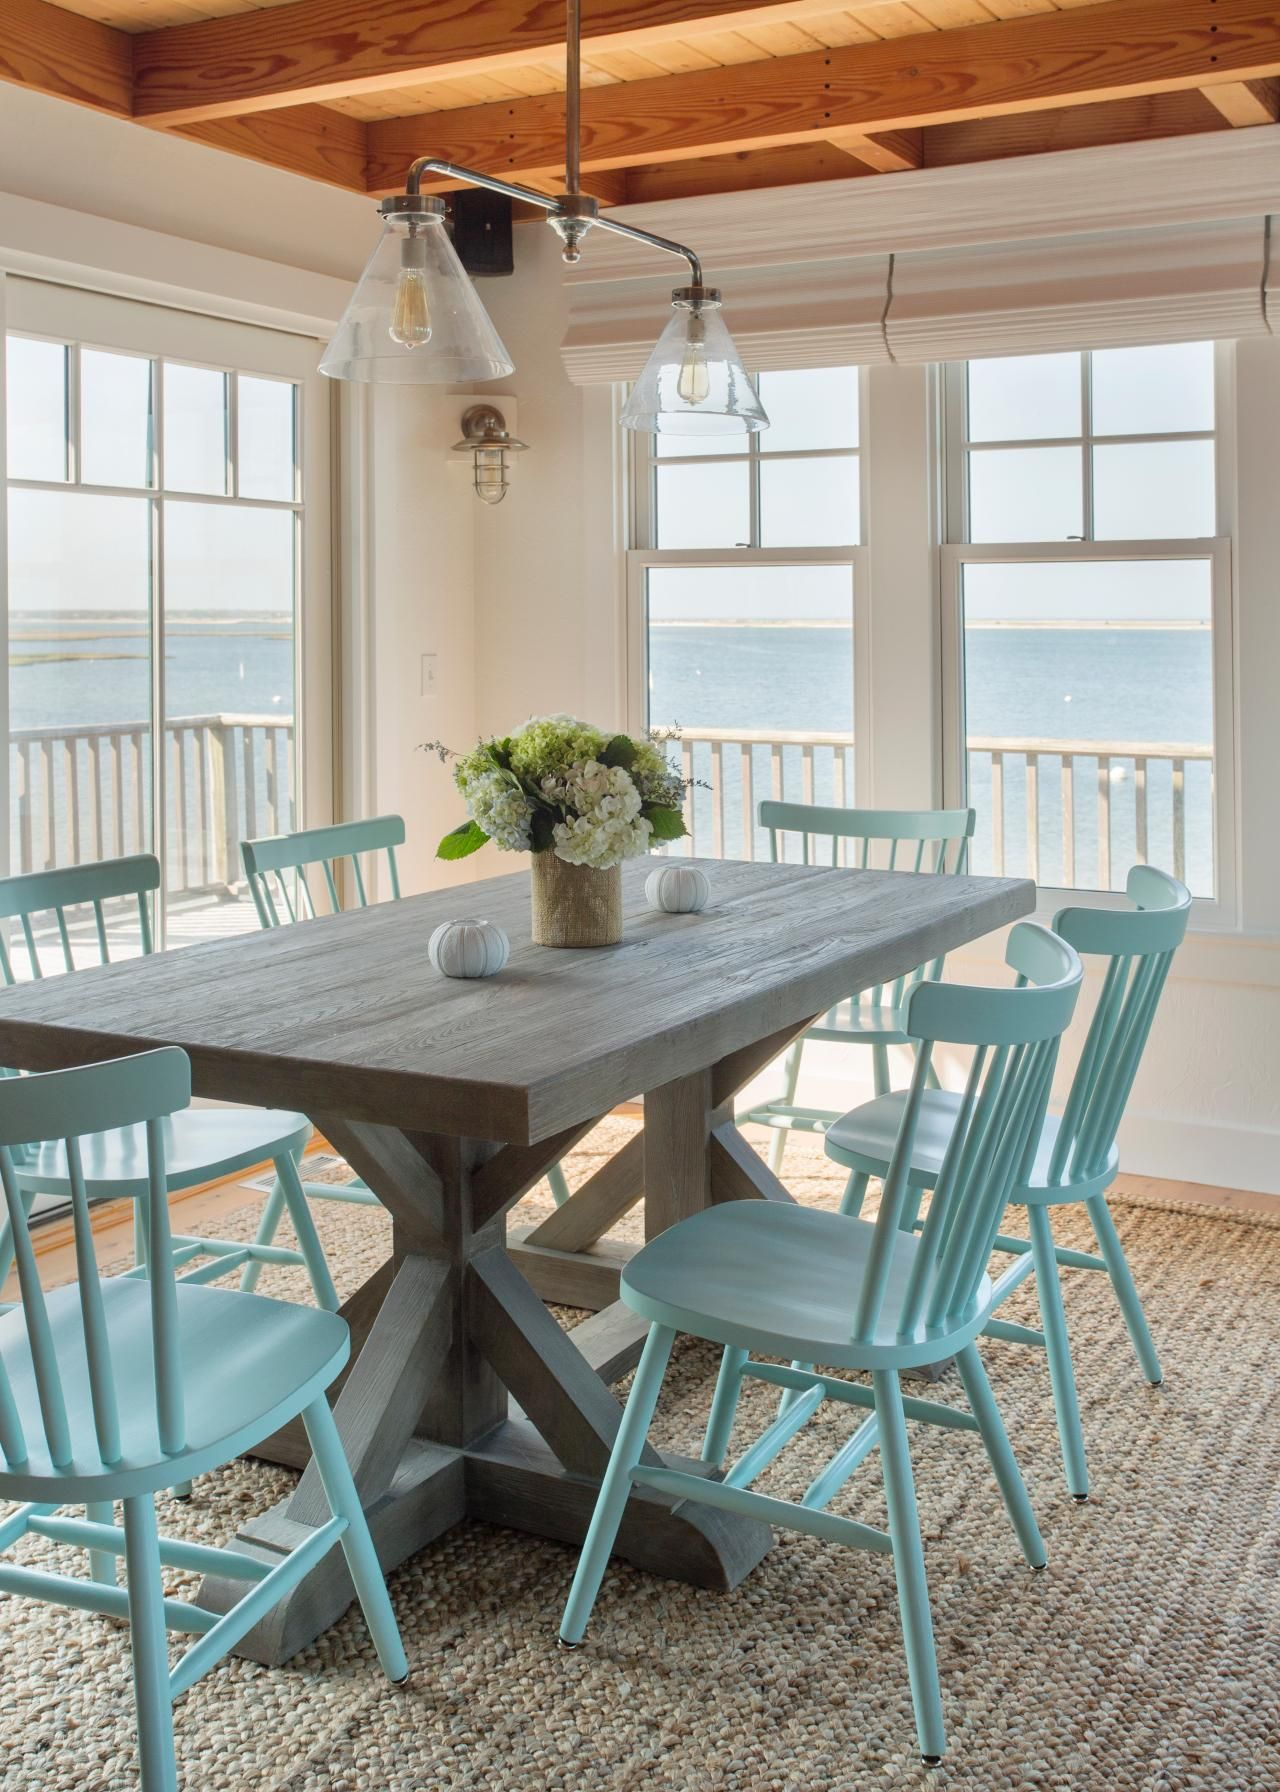 Coastal Dining Room With Beachy Blue Dining Chairs | HGTV